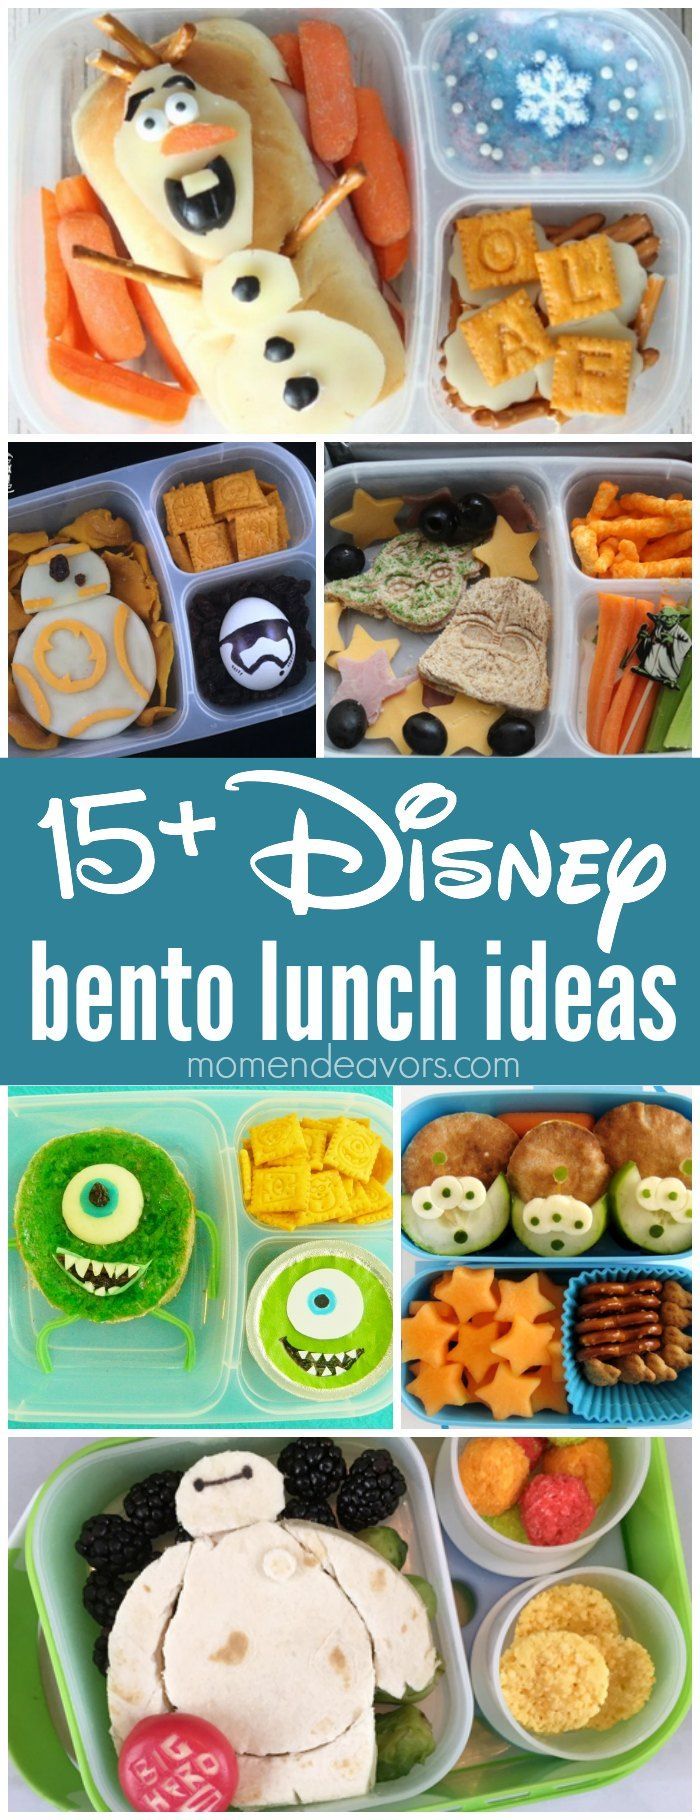 302 best Kid Lunch Ideas images on Pinterest | Kid lunches, For kids ...